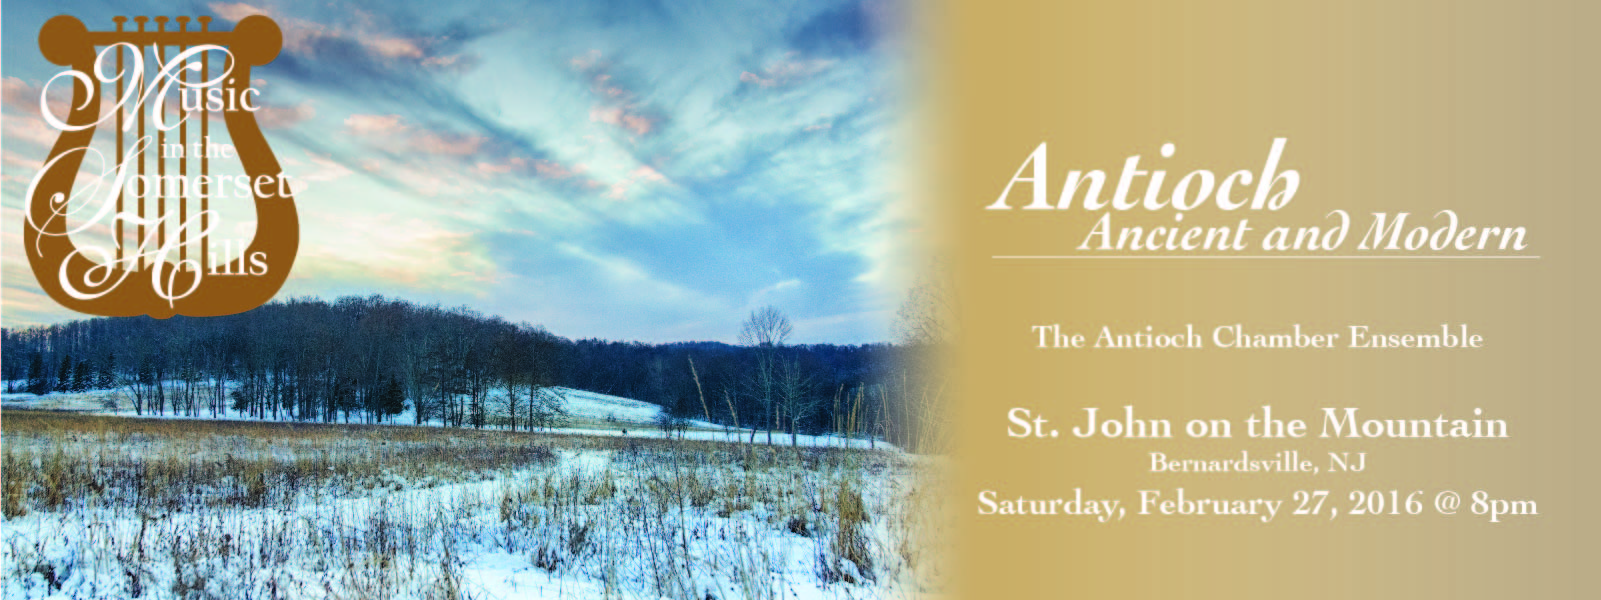 Tickets for Antioch Chamber Ensemble - Living Music in Bernardsville from ShowClix